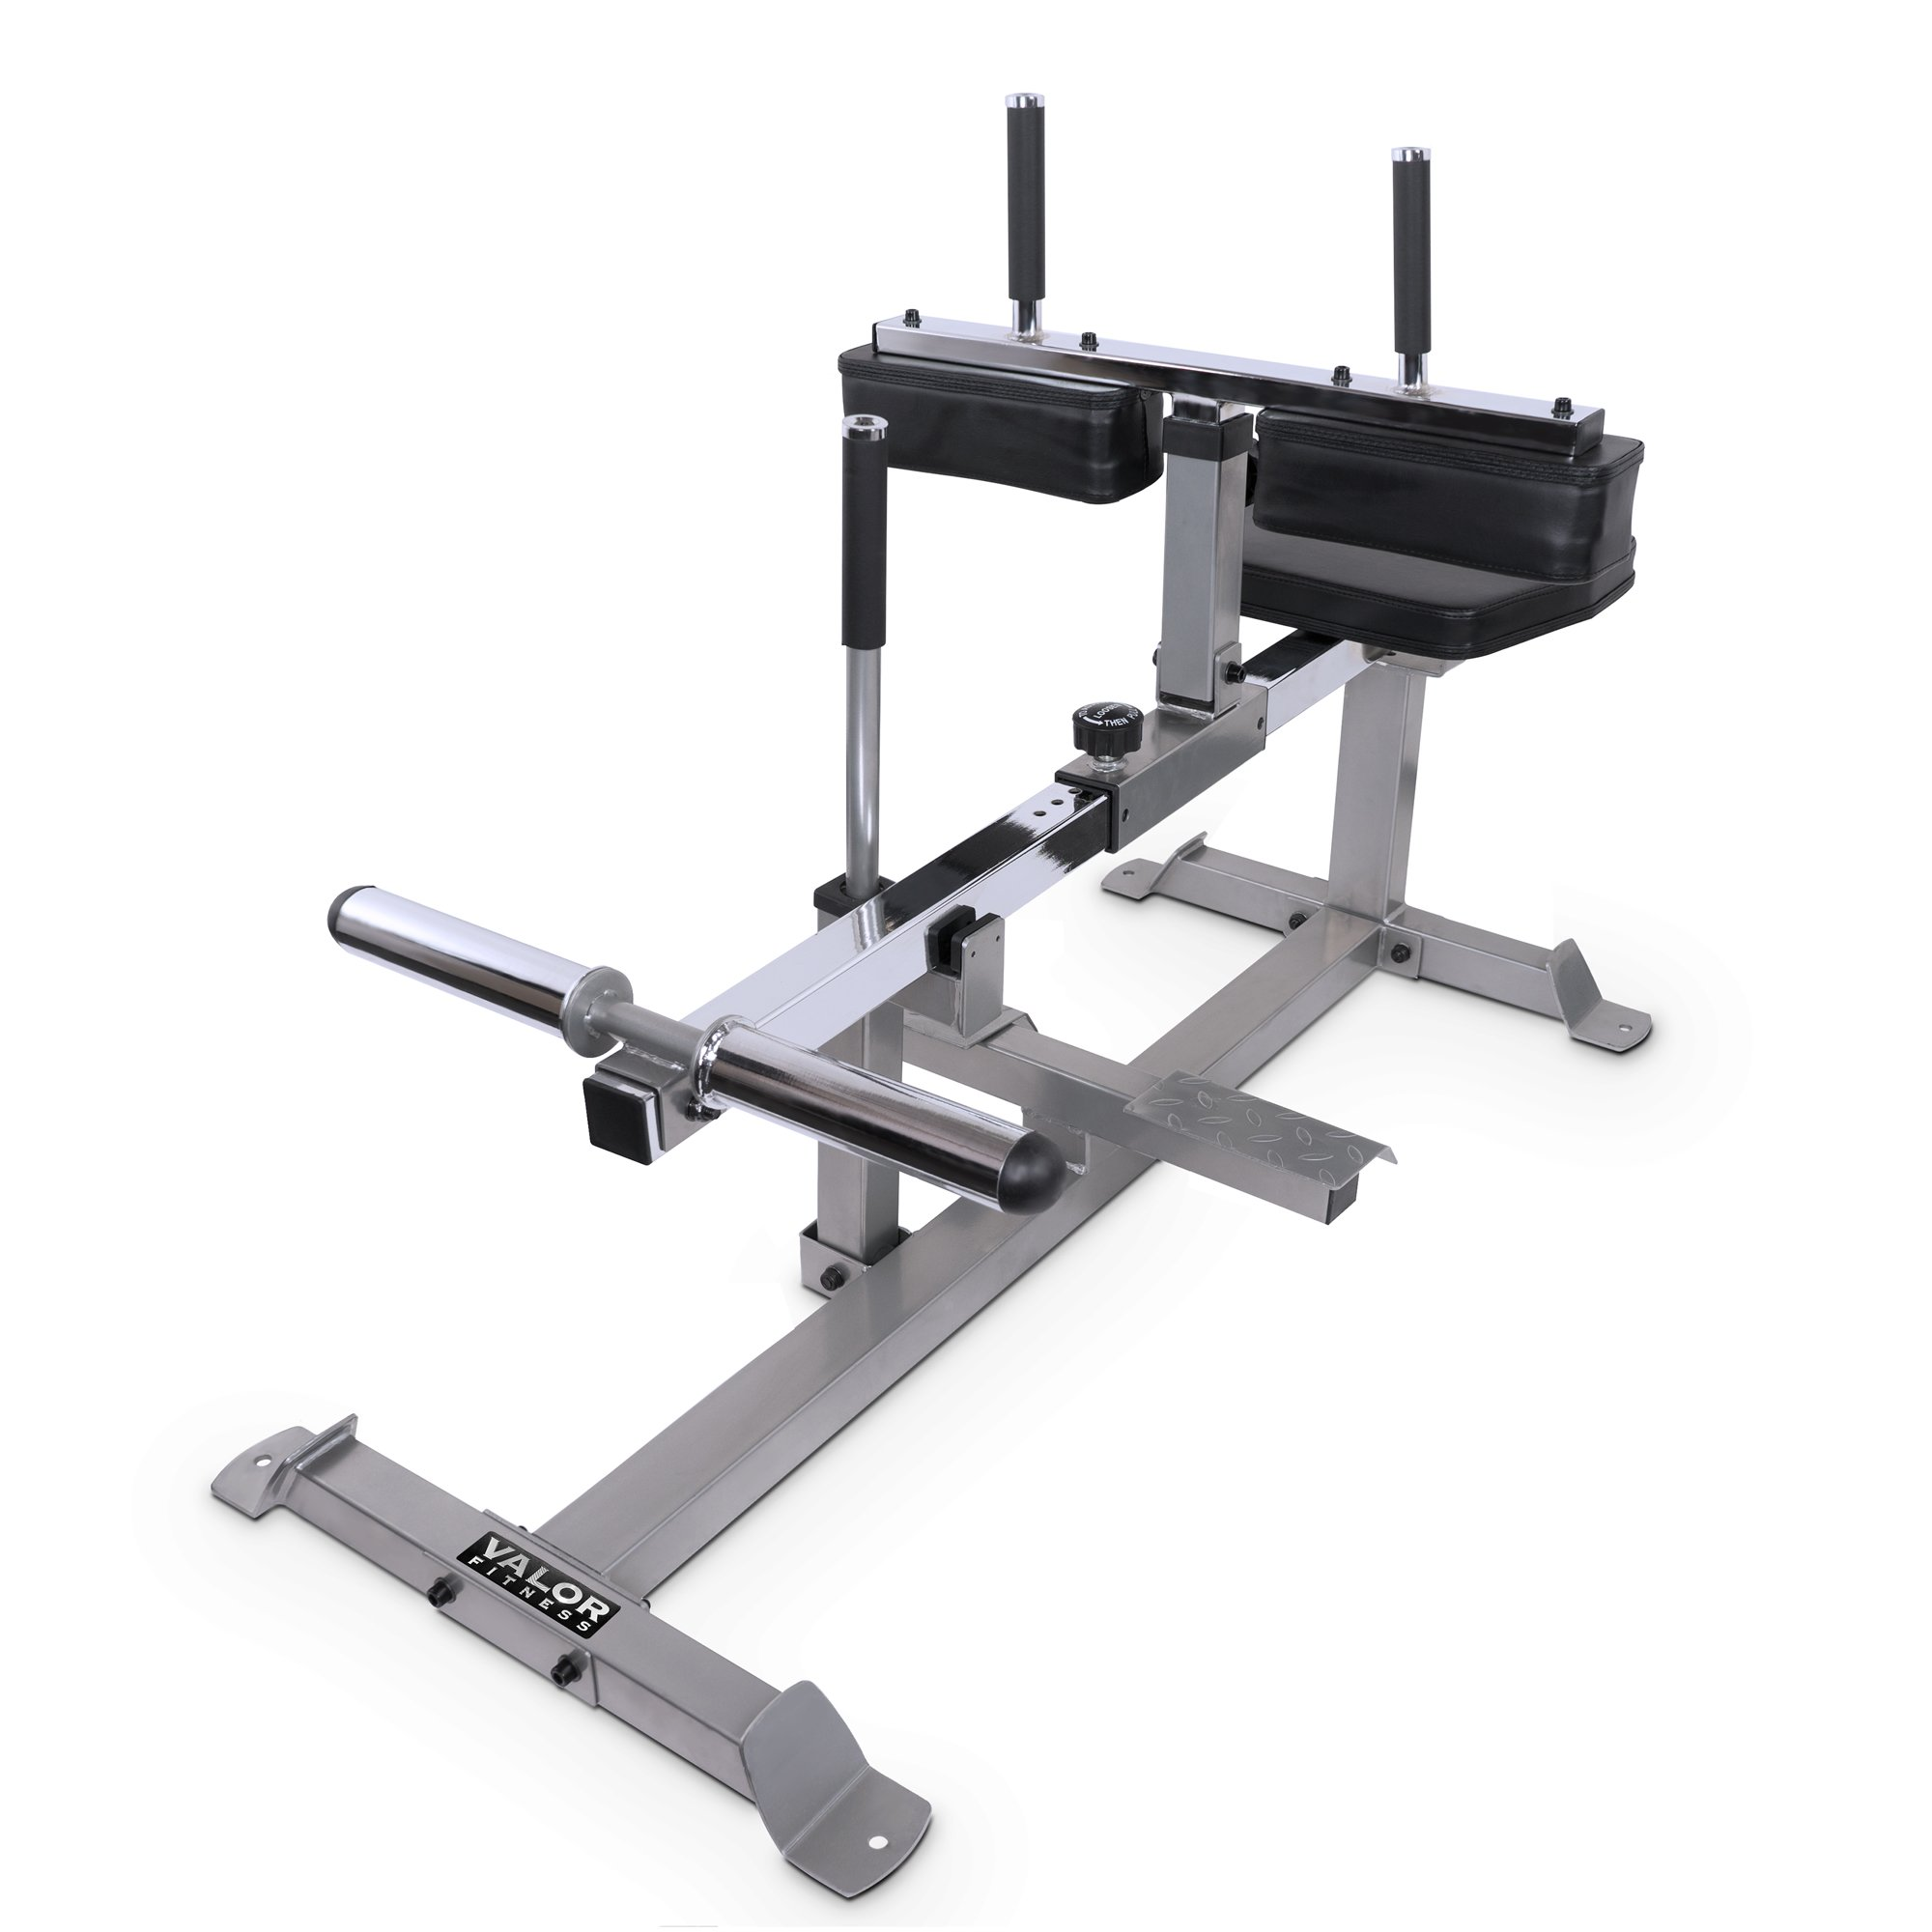 Valor Fitness CC-5 Seated Calf Raise by Valor Fitness (Image #1)